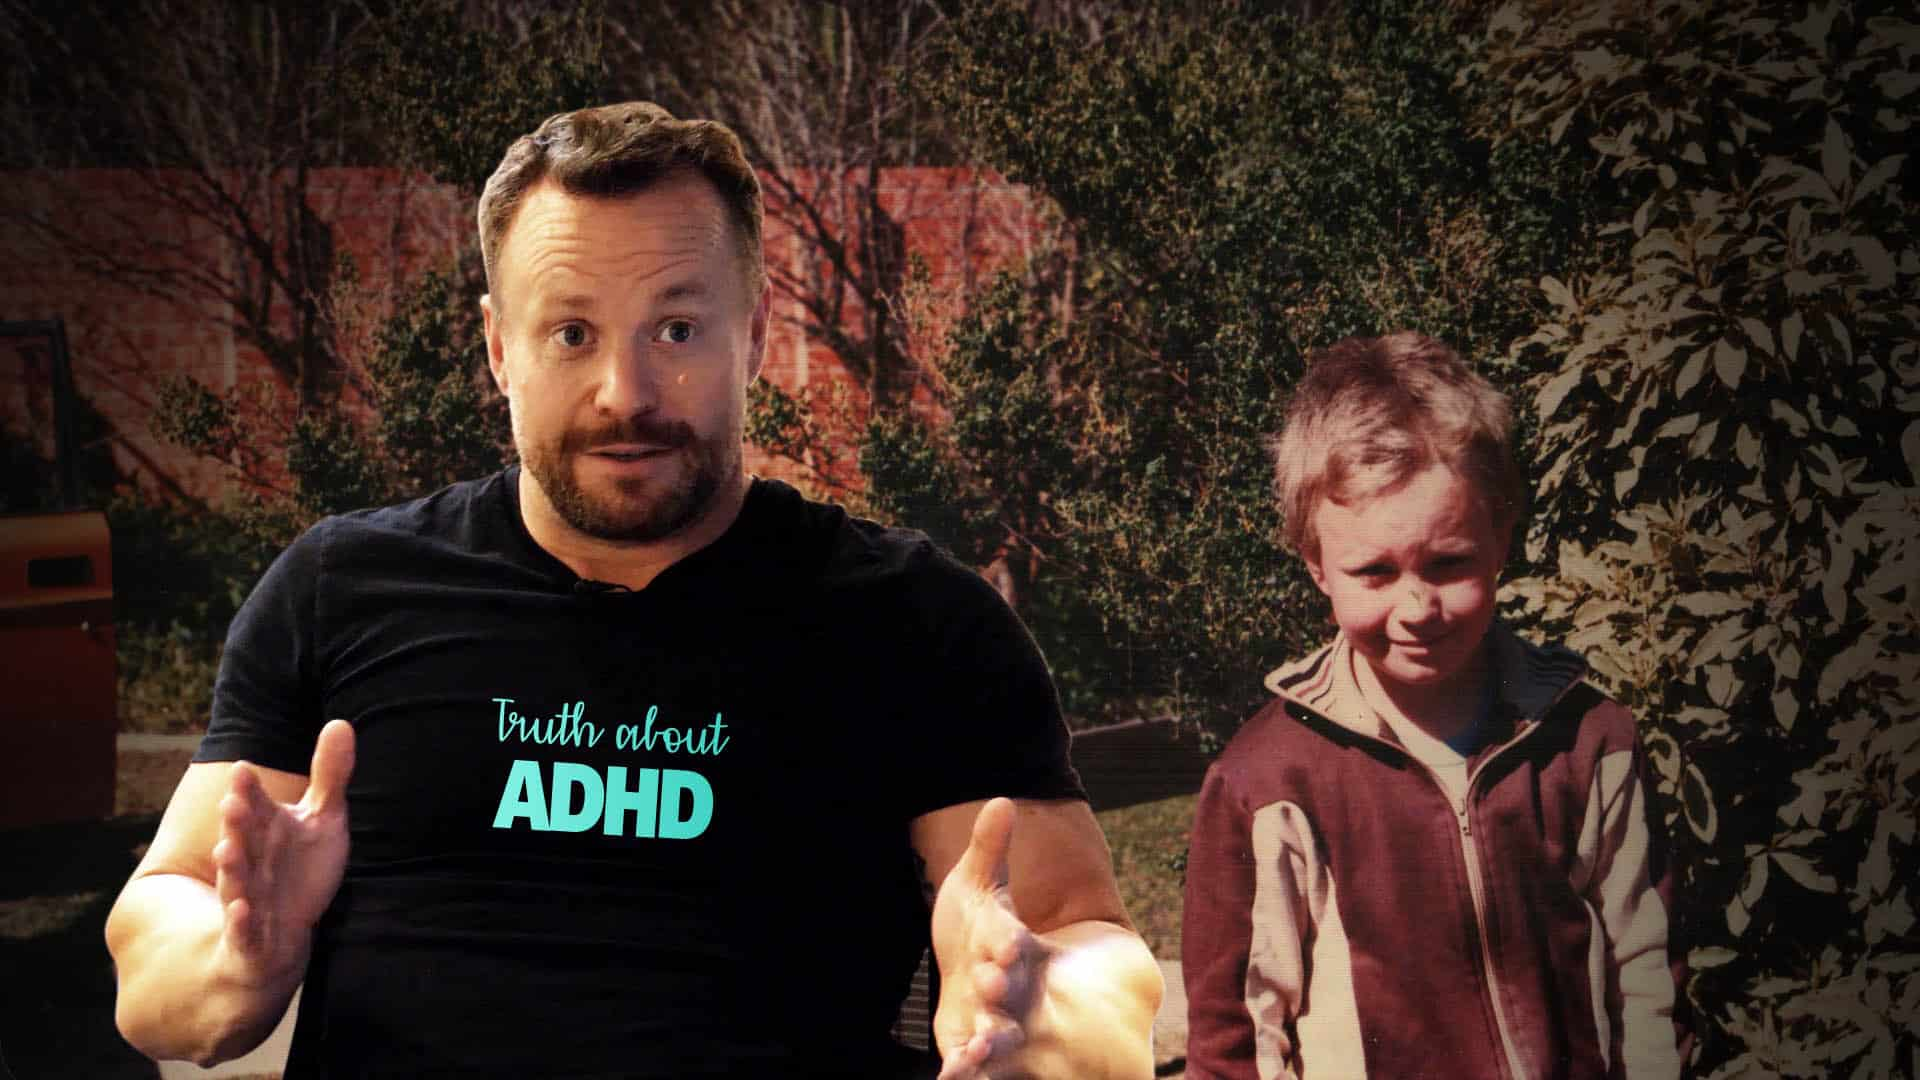 11-10-The Truth about ADHD1